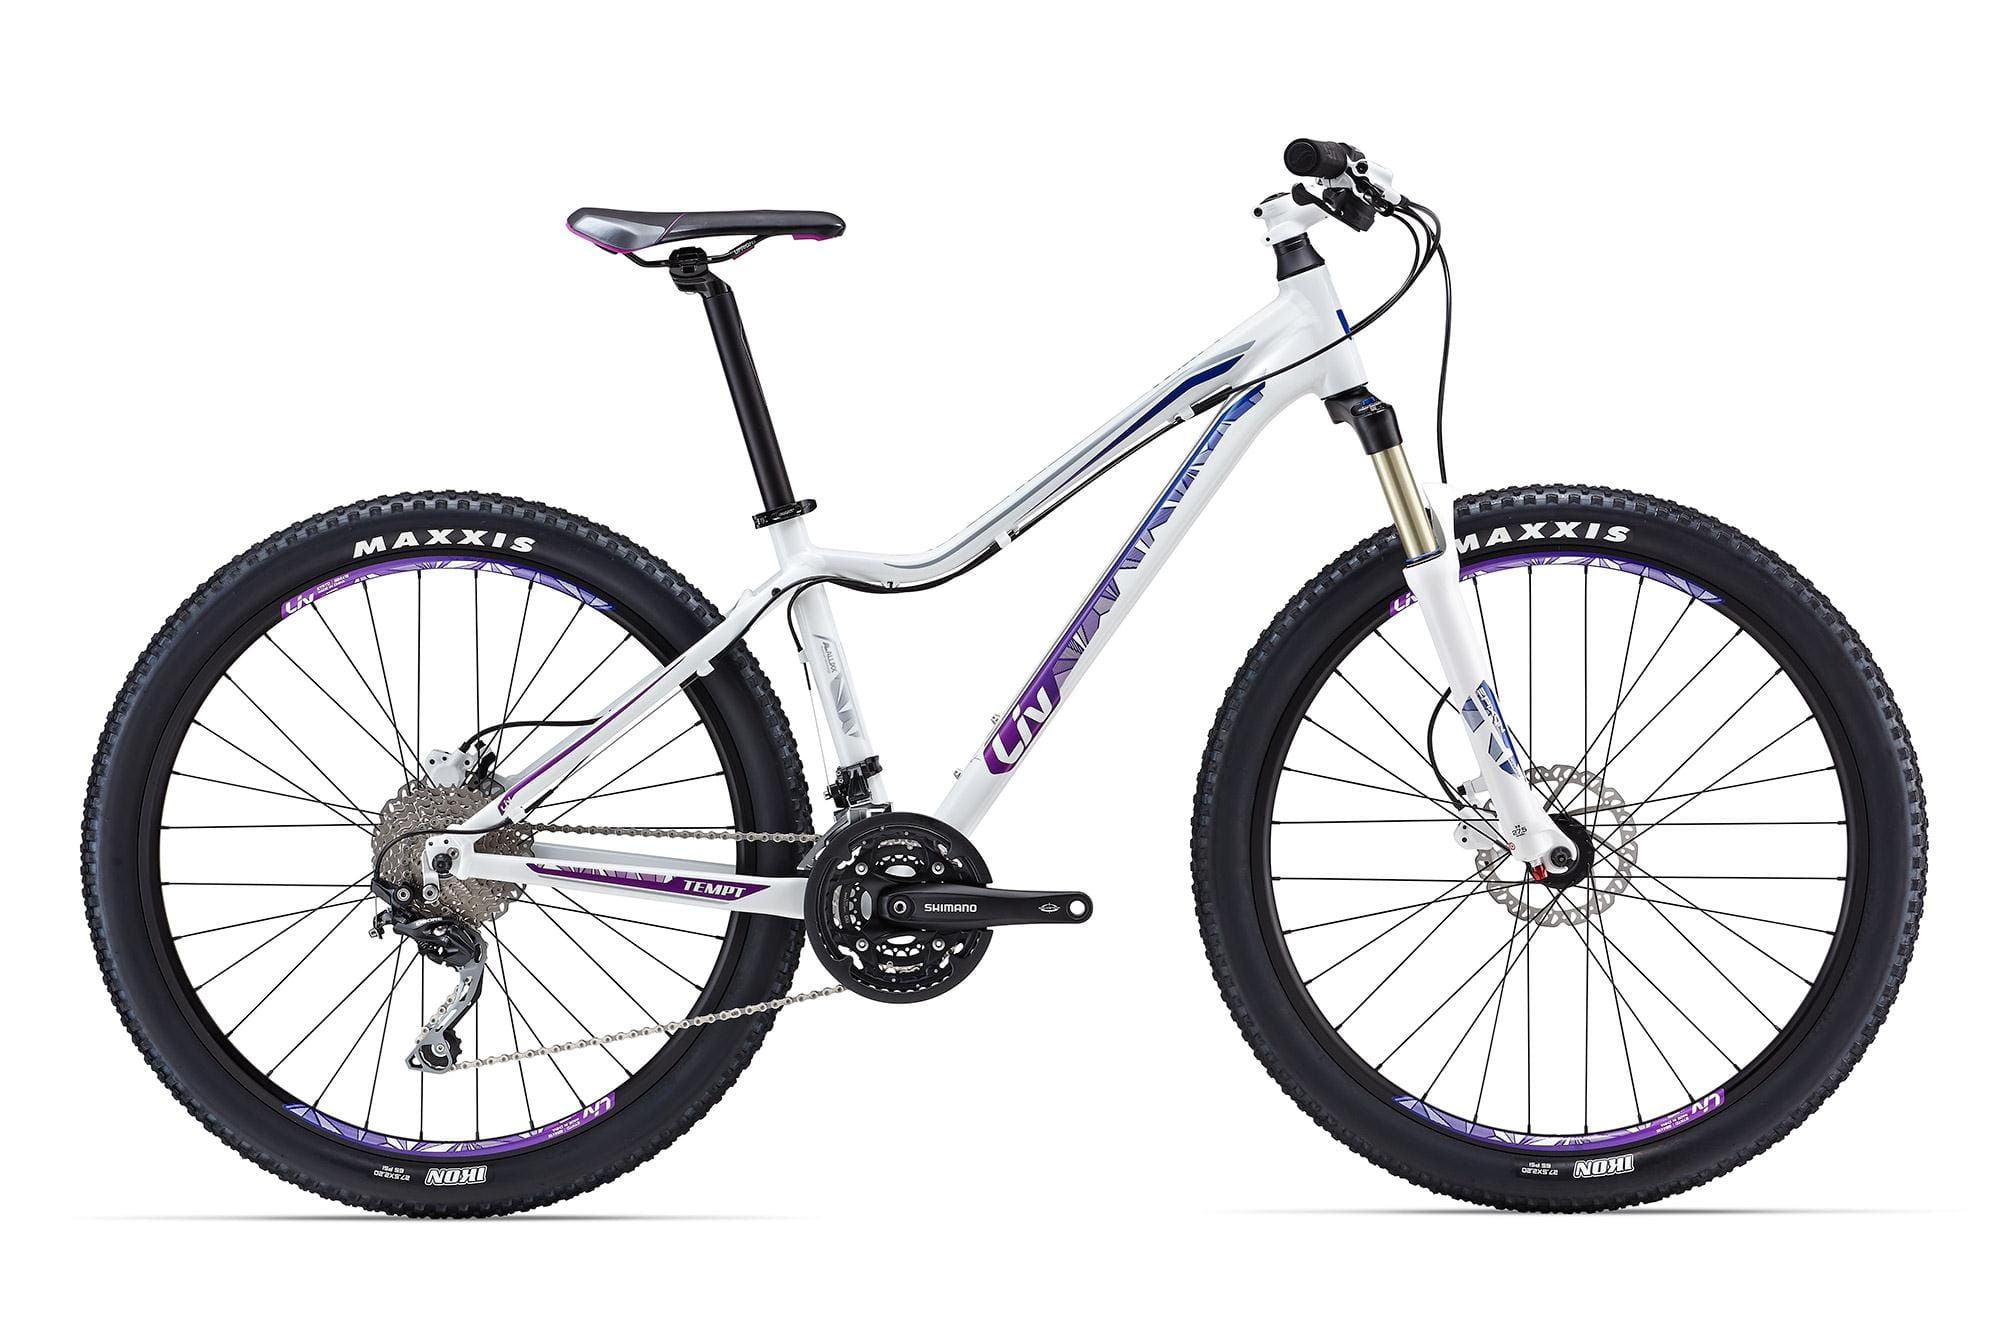 Giant Tempt 2 27 5 Hardtail Mtb Bike 2016 All Terrain Cycles